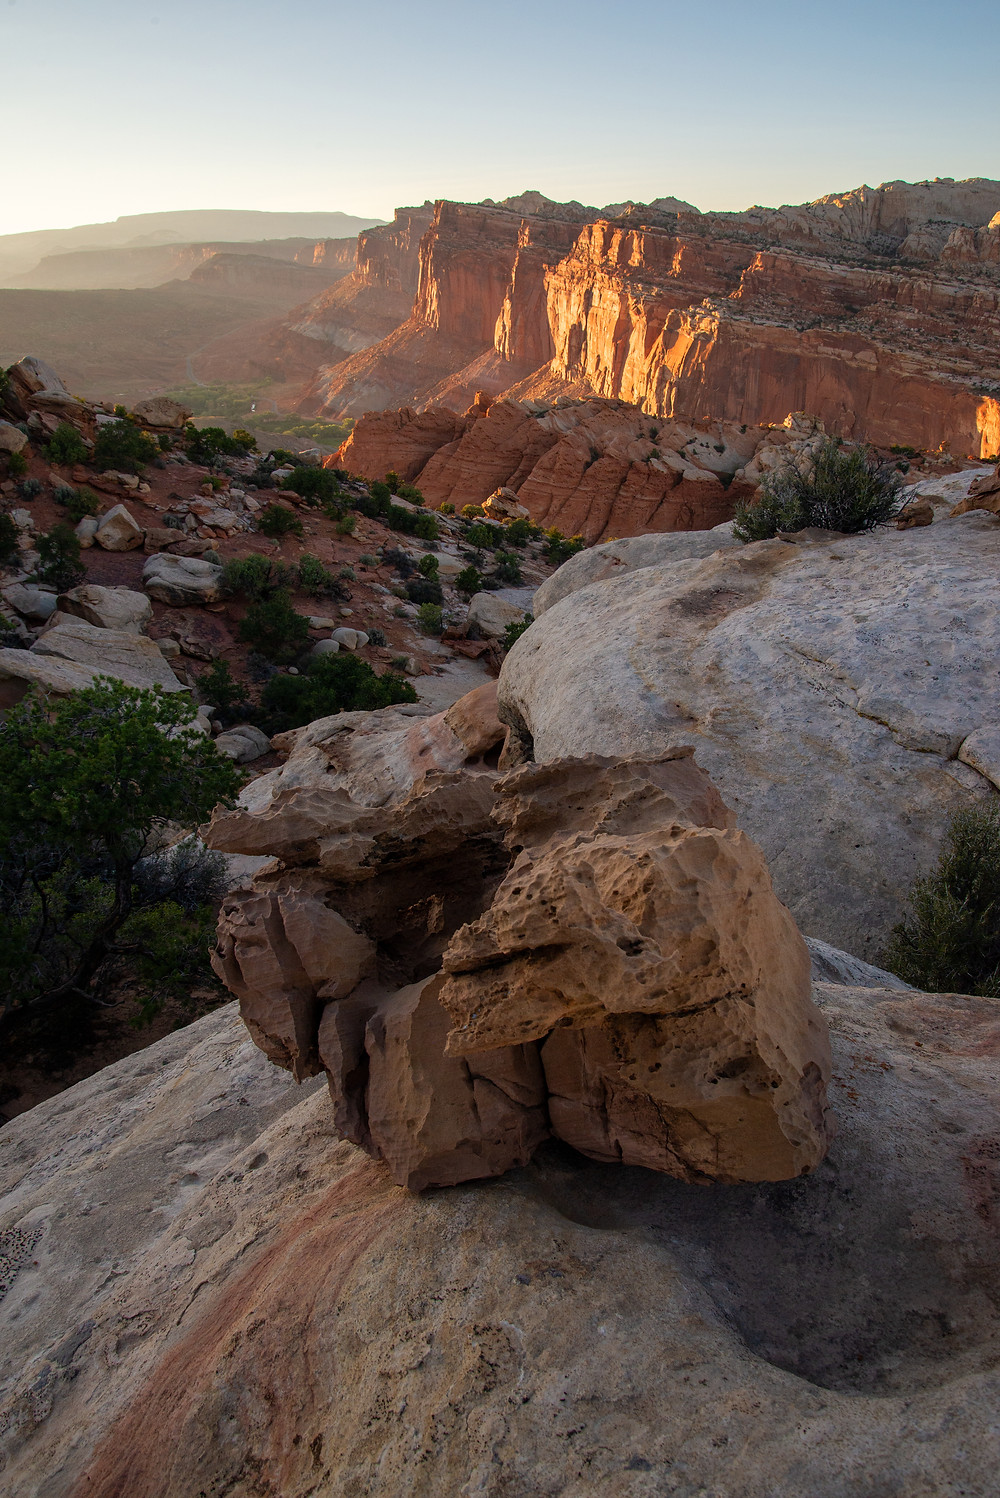 A sunset view looking towards Fruita in Capitol Reef National Park in Utah.